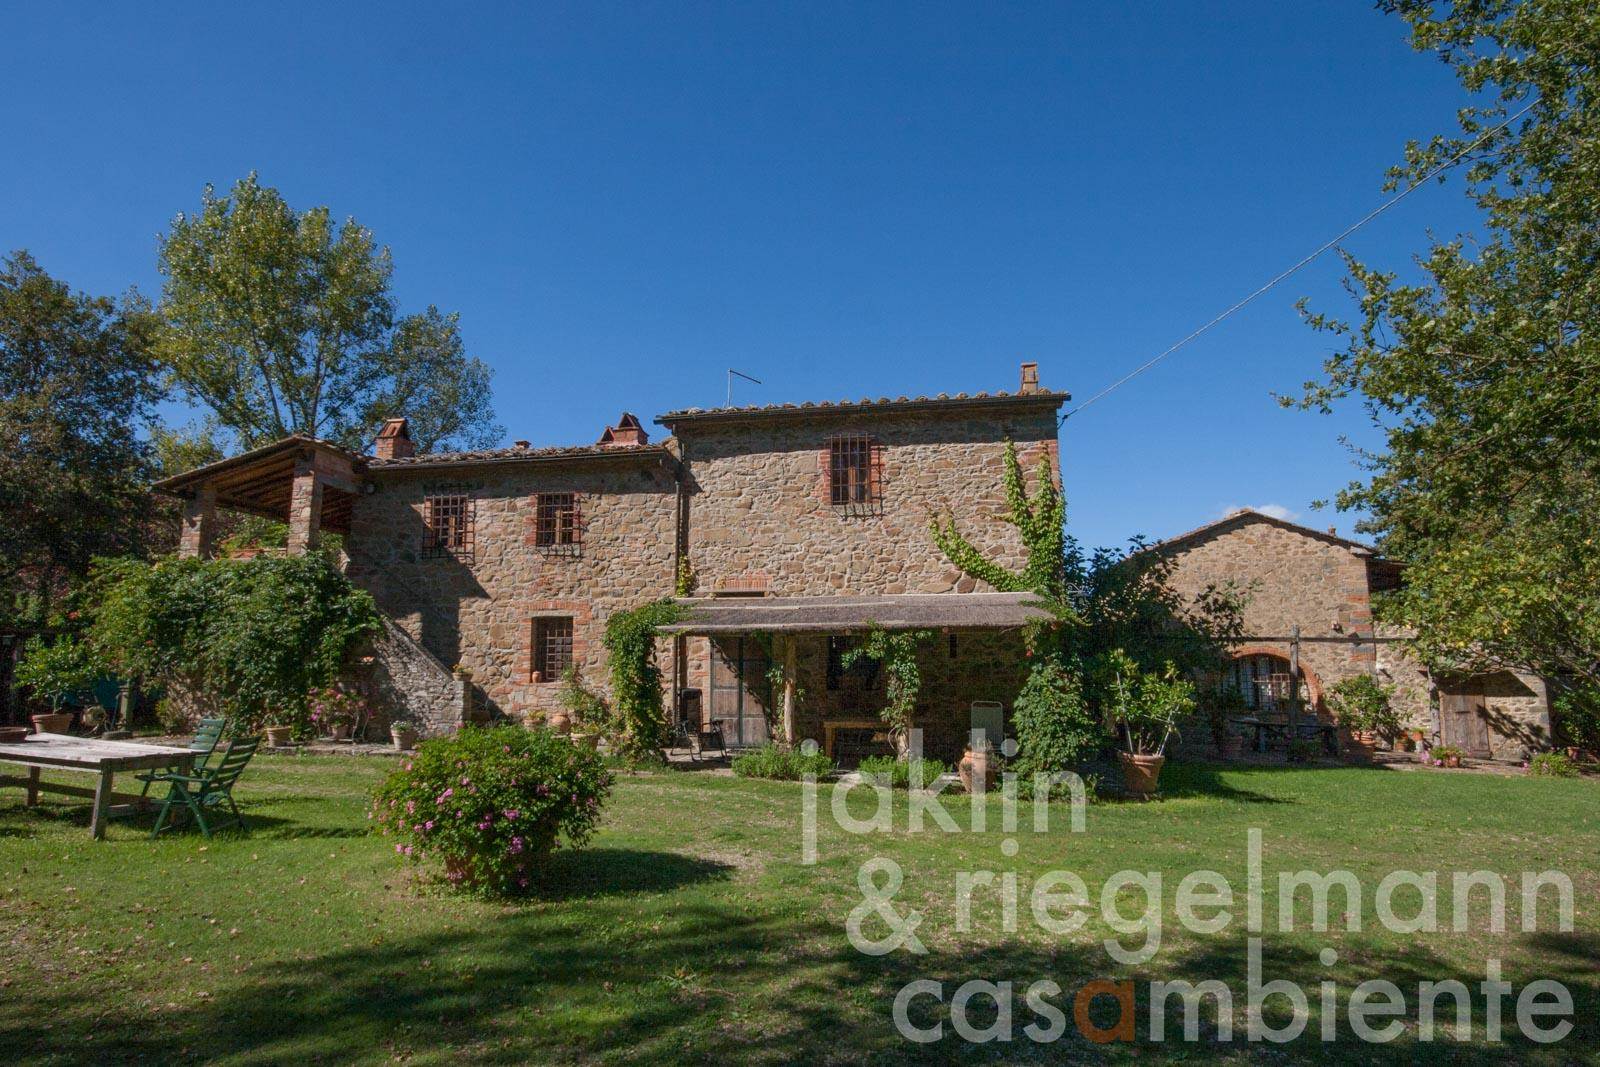 The restored Tuscan country house for sale close to Siena with annexe, pool and the possibility to keep horses